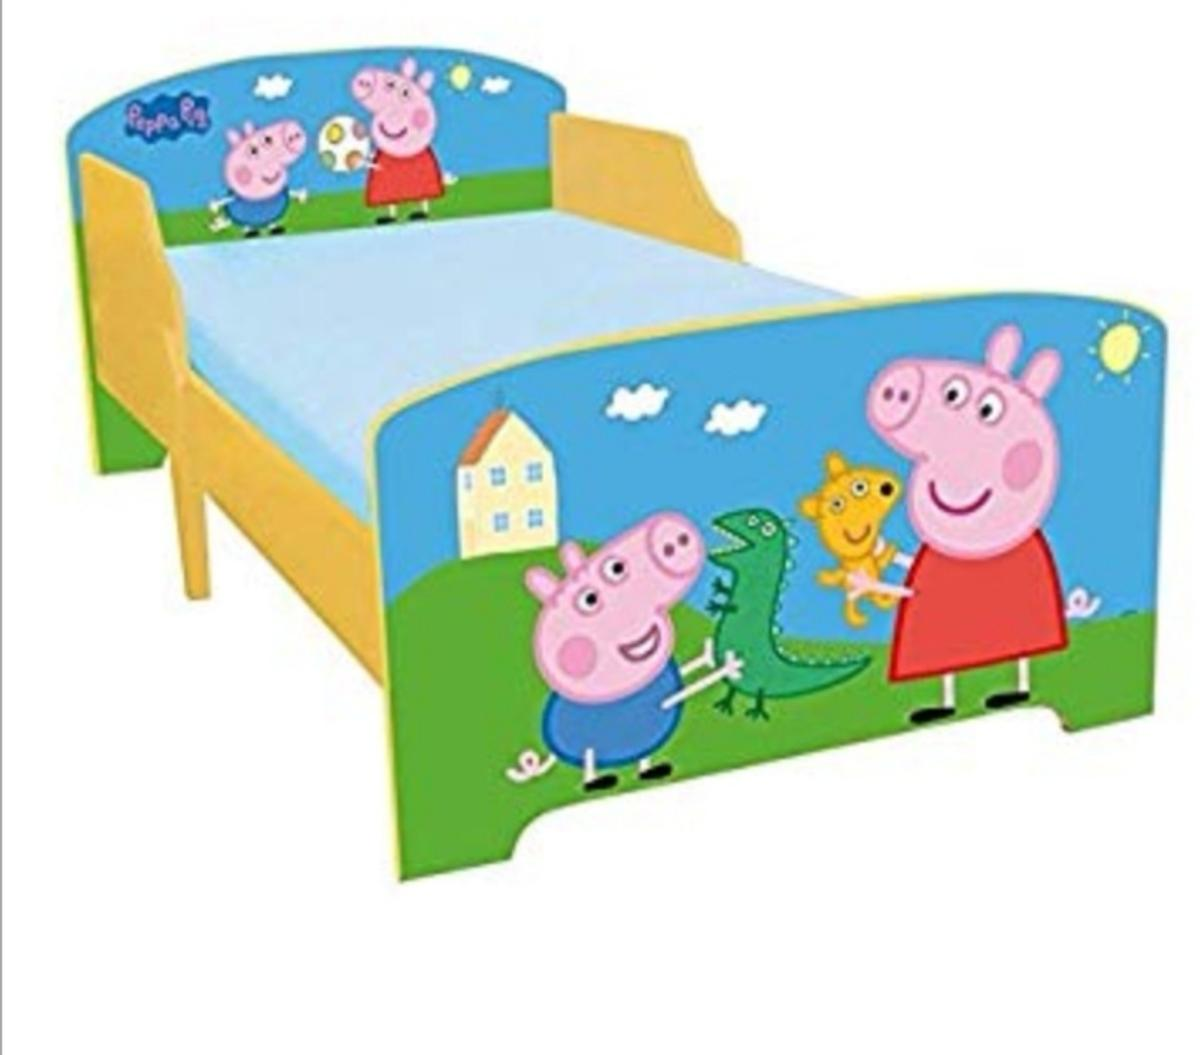 Peppa pig toddler bed with mattress in mint condition £40 ono